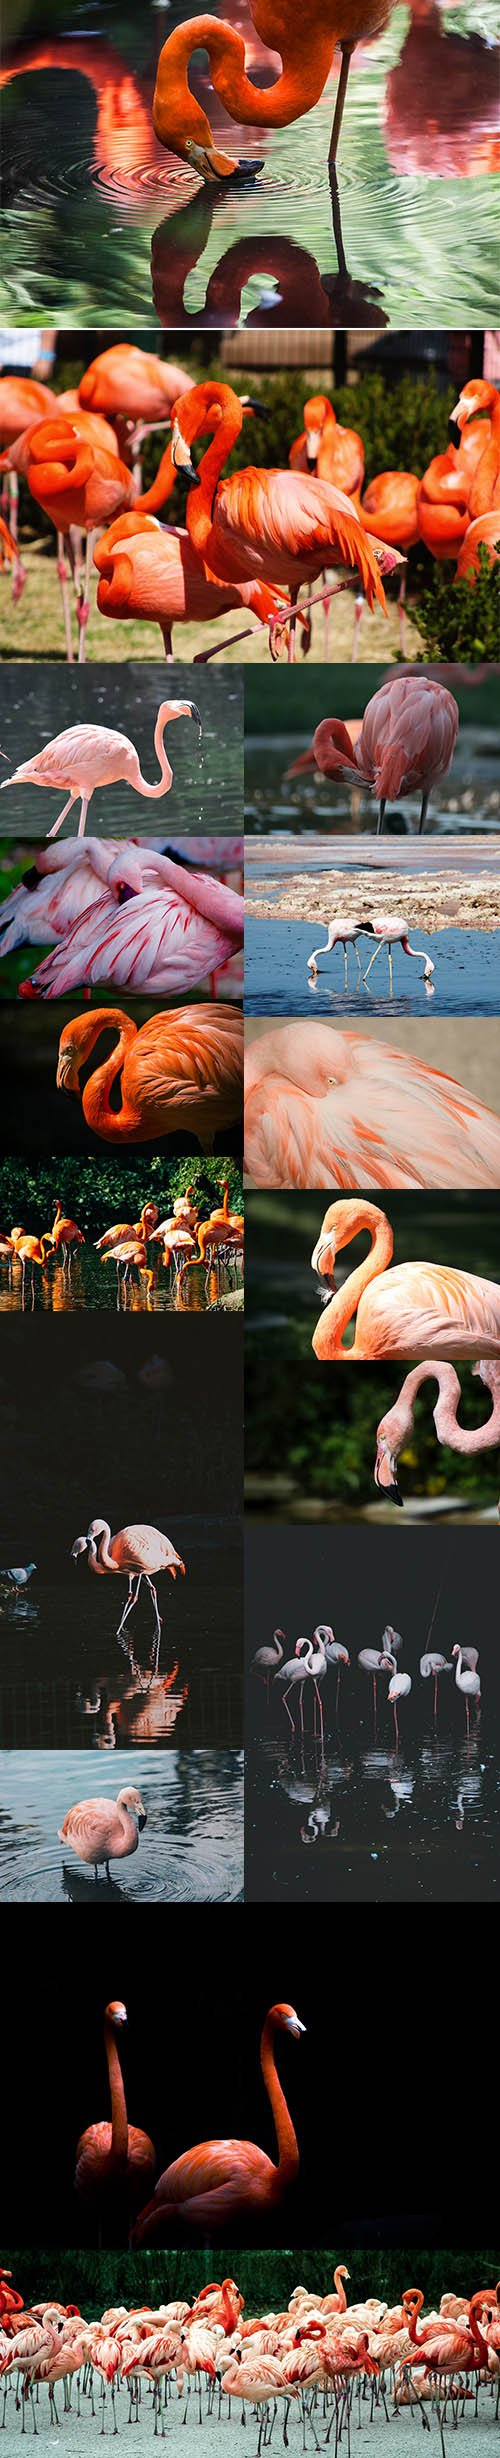 Flamingo Bundle - UHQ Stock Photo Vol 2